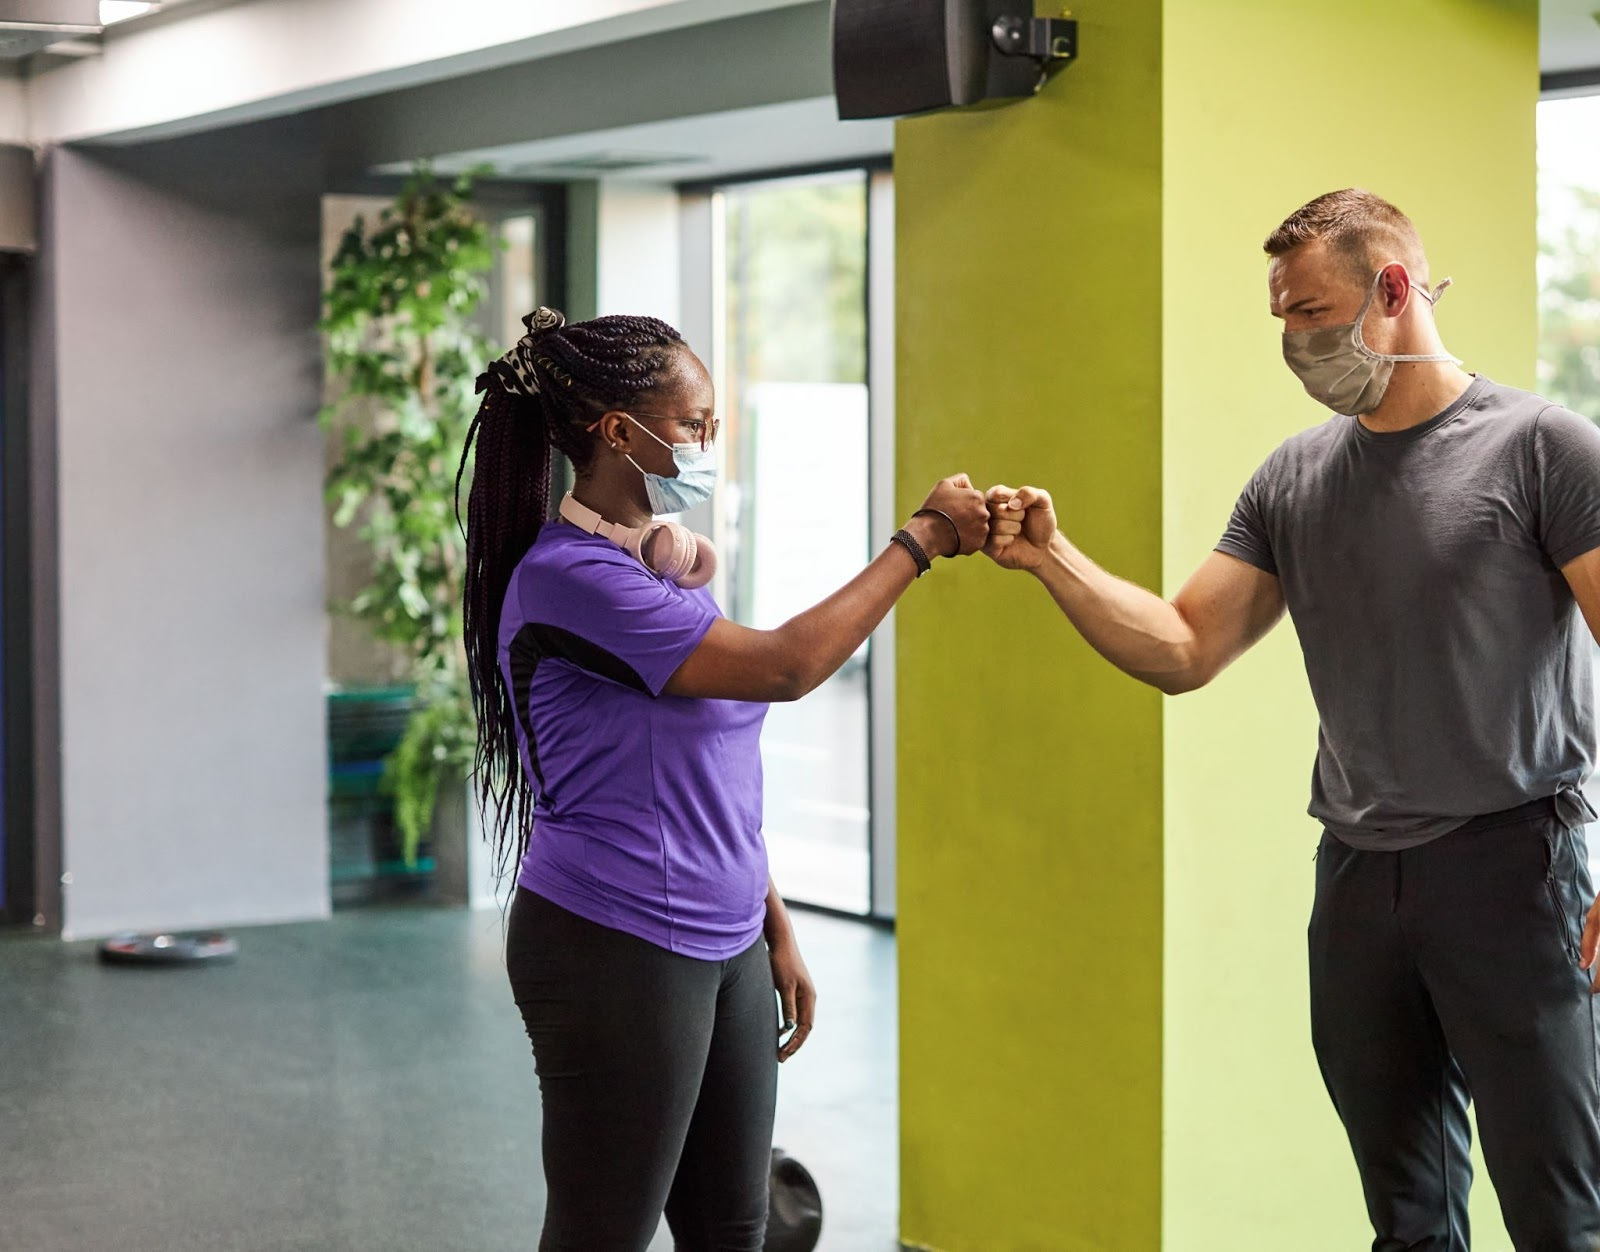 Woman and man doing a fist bump during a workout at the YMCA